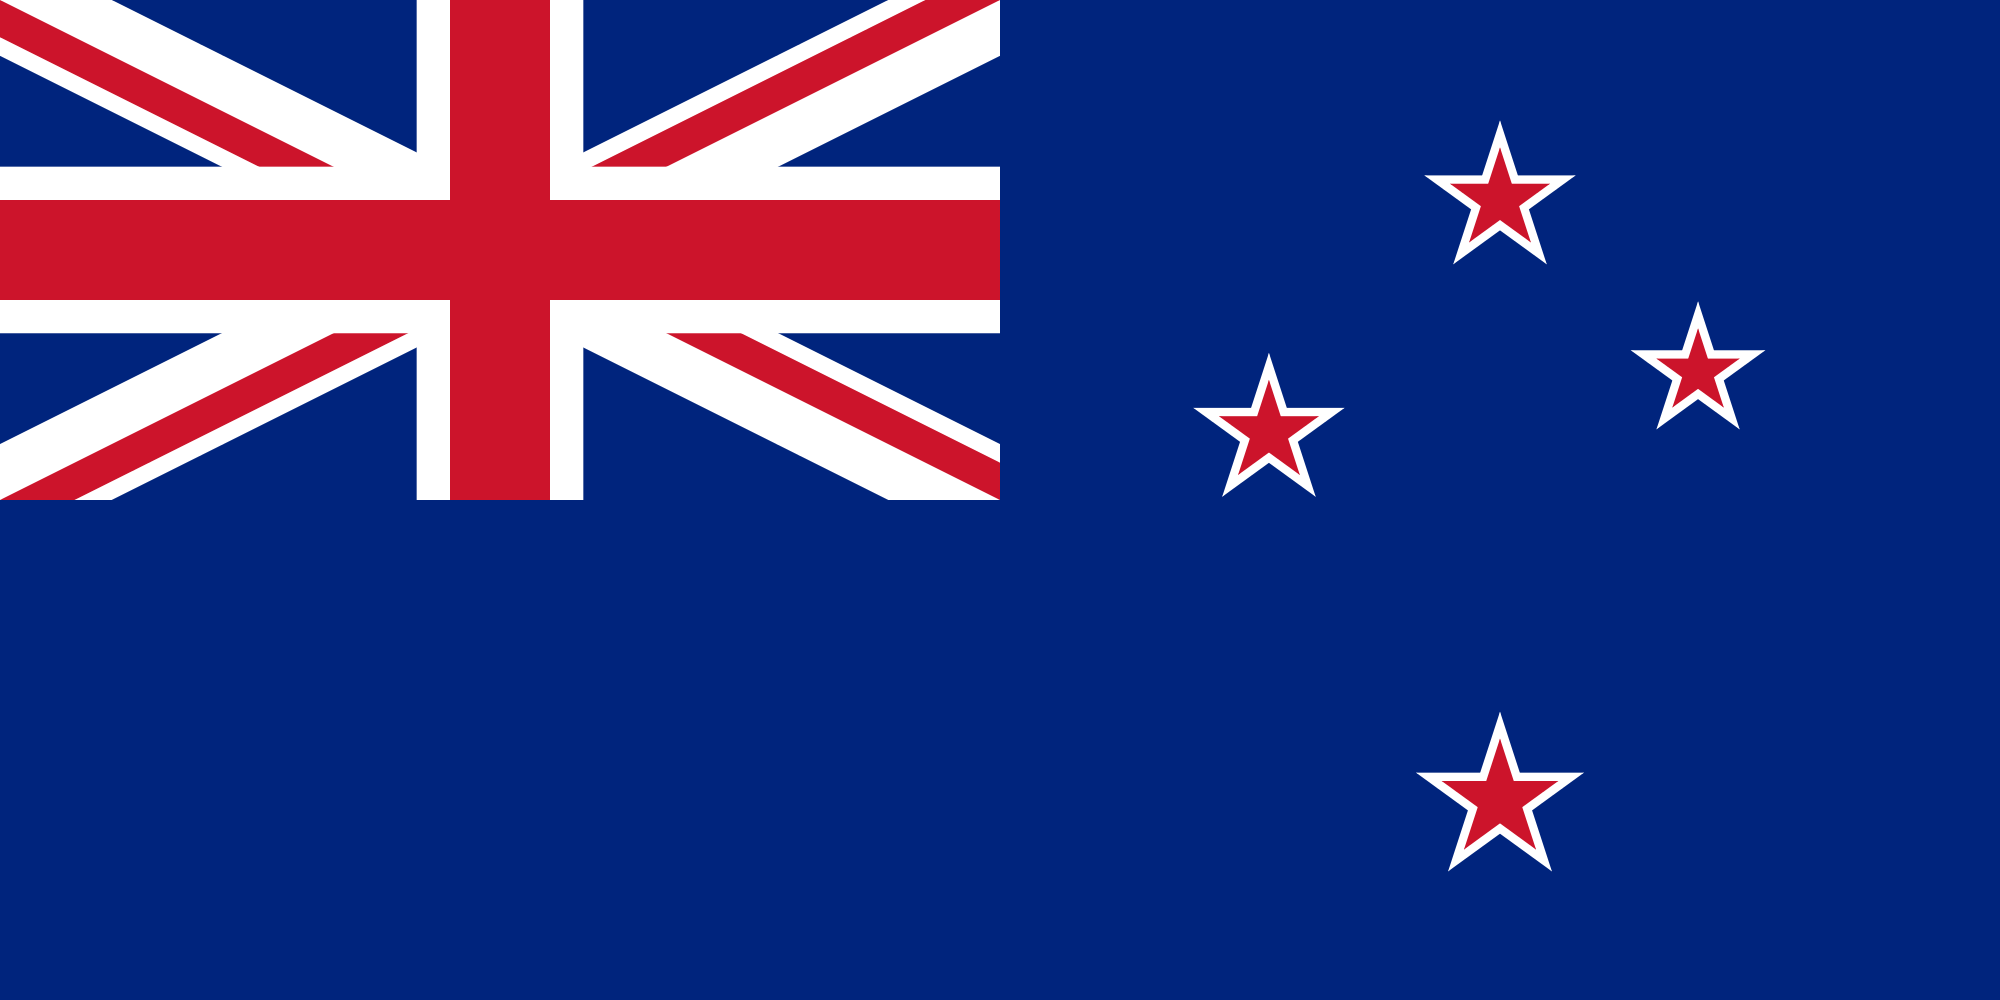 Insanity, Incest, and Inebriation: Is it Time to Ban Australia Day?